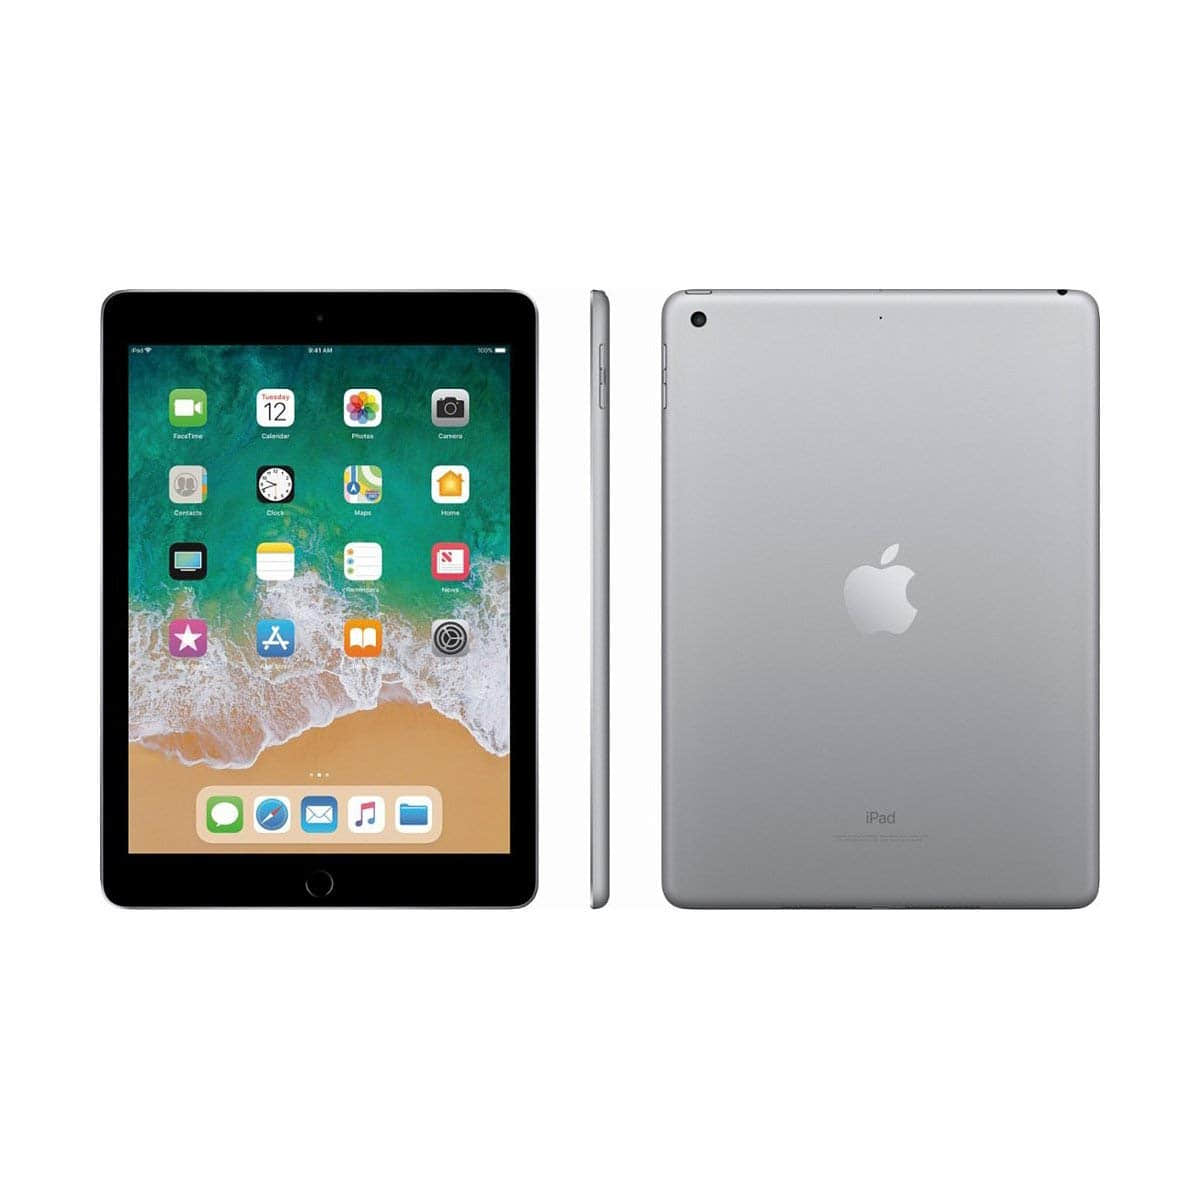 Apple iPad(2017 Model with WiFi, 32GB, Space Gray )